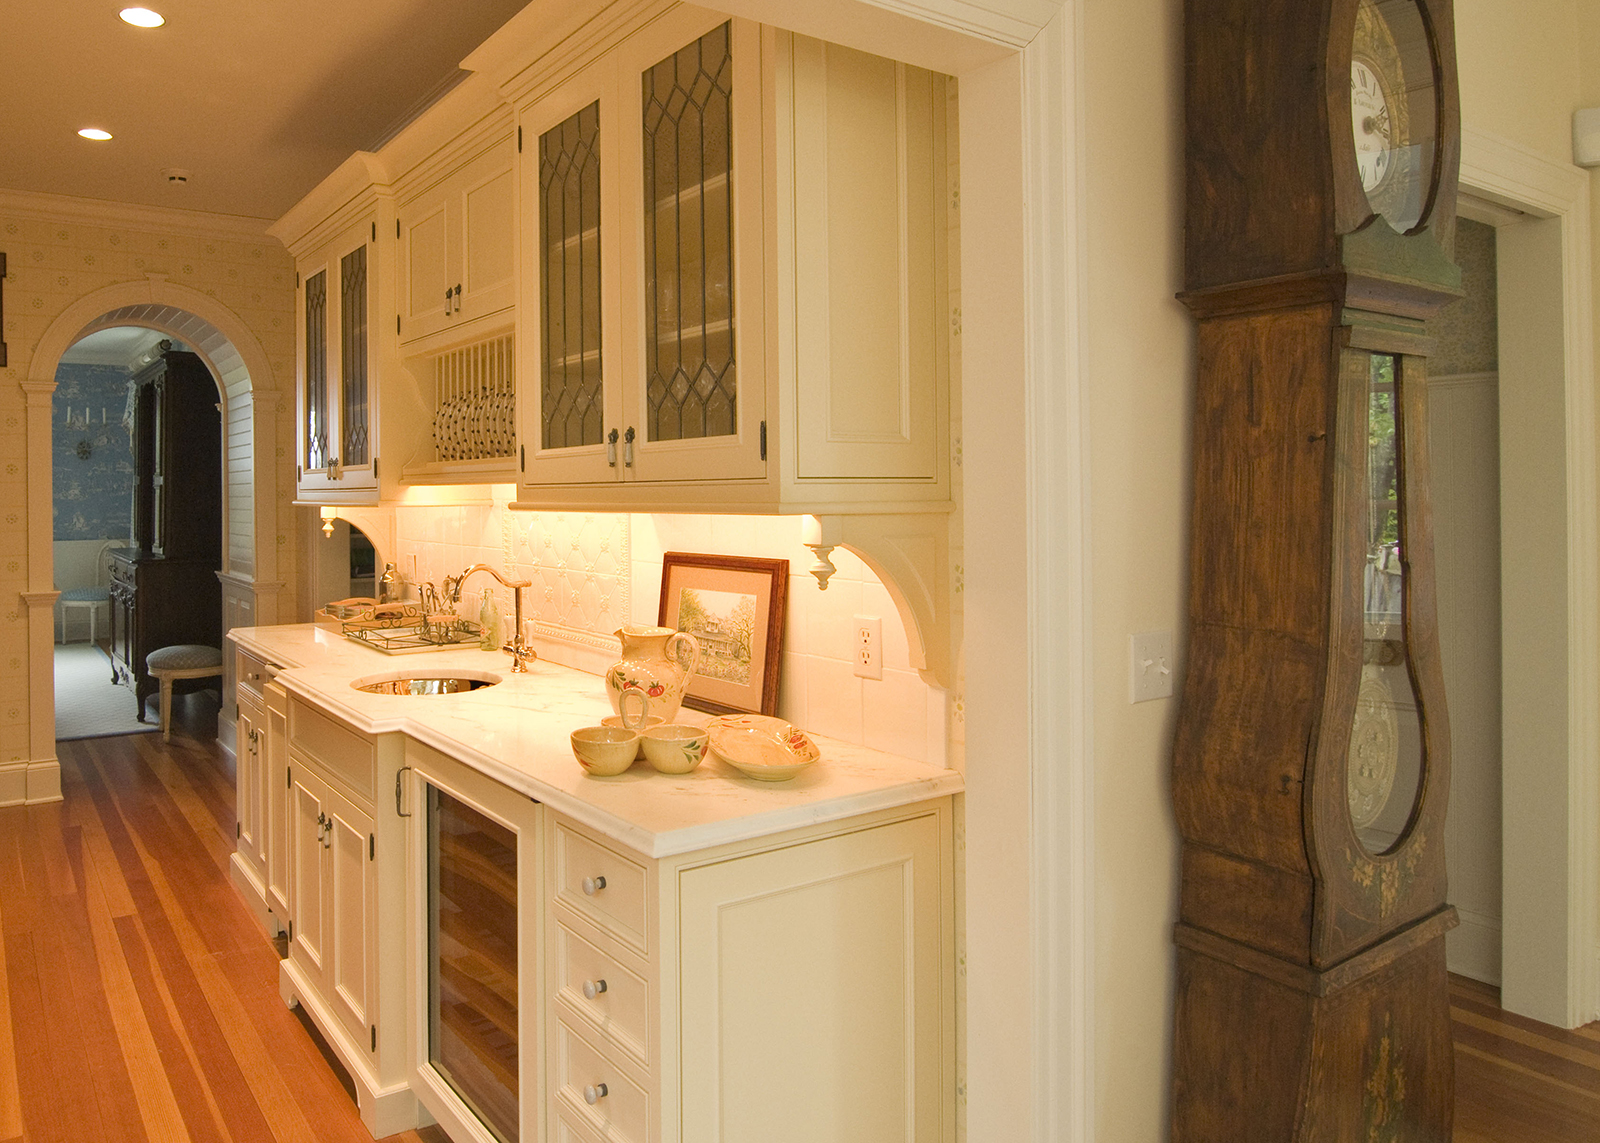 Gary M. Vacca Building Contractor Restoration Custom Cabinetry Millwork